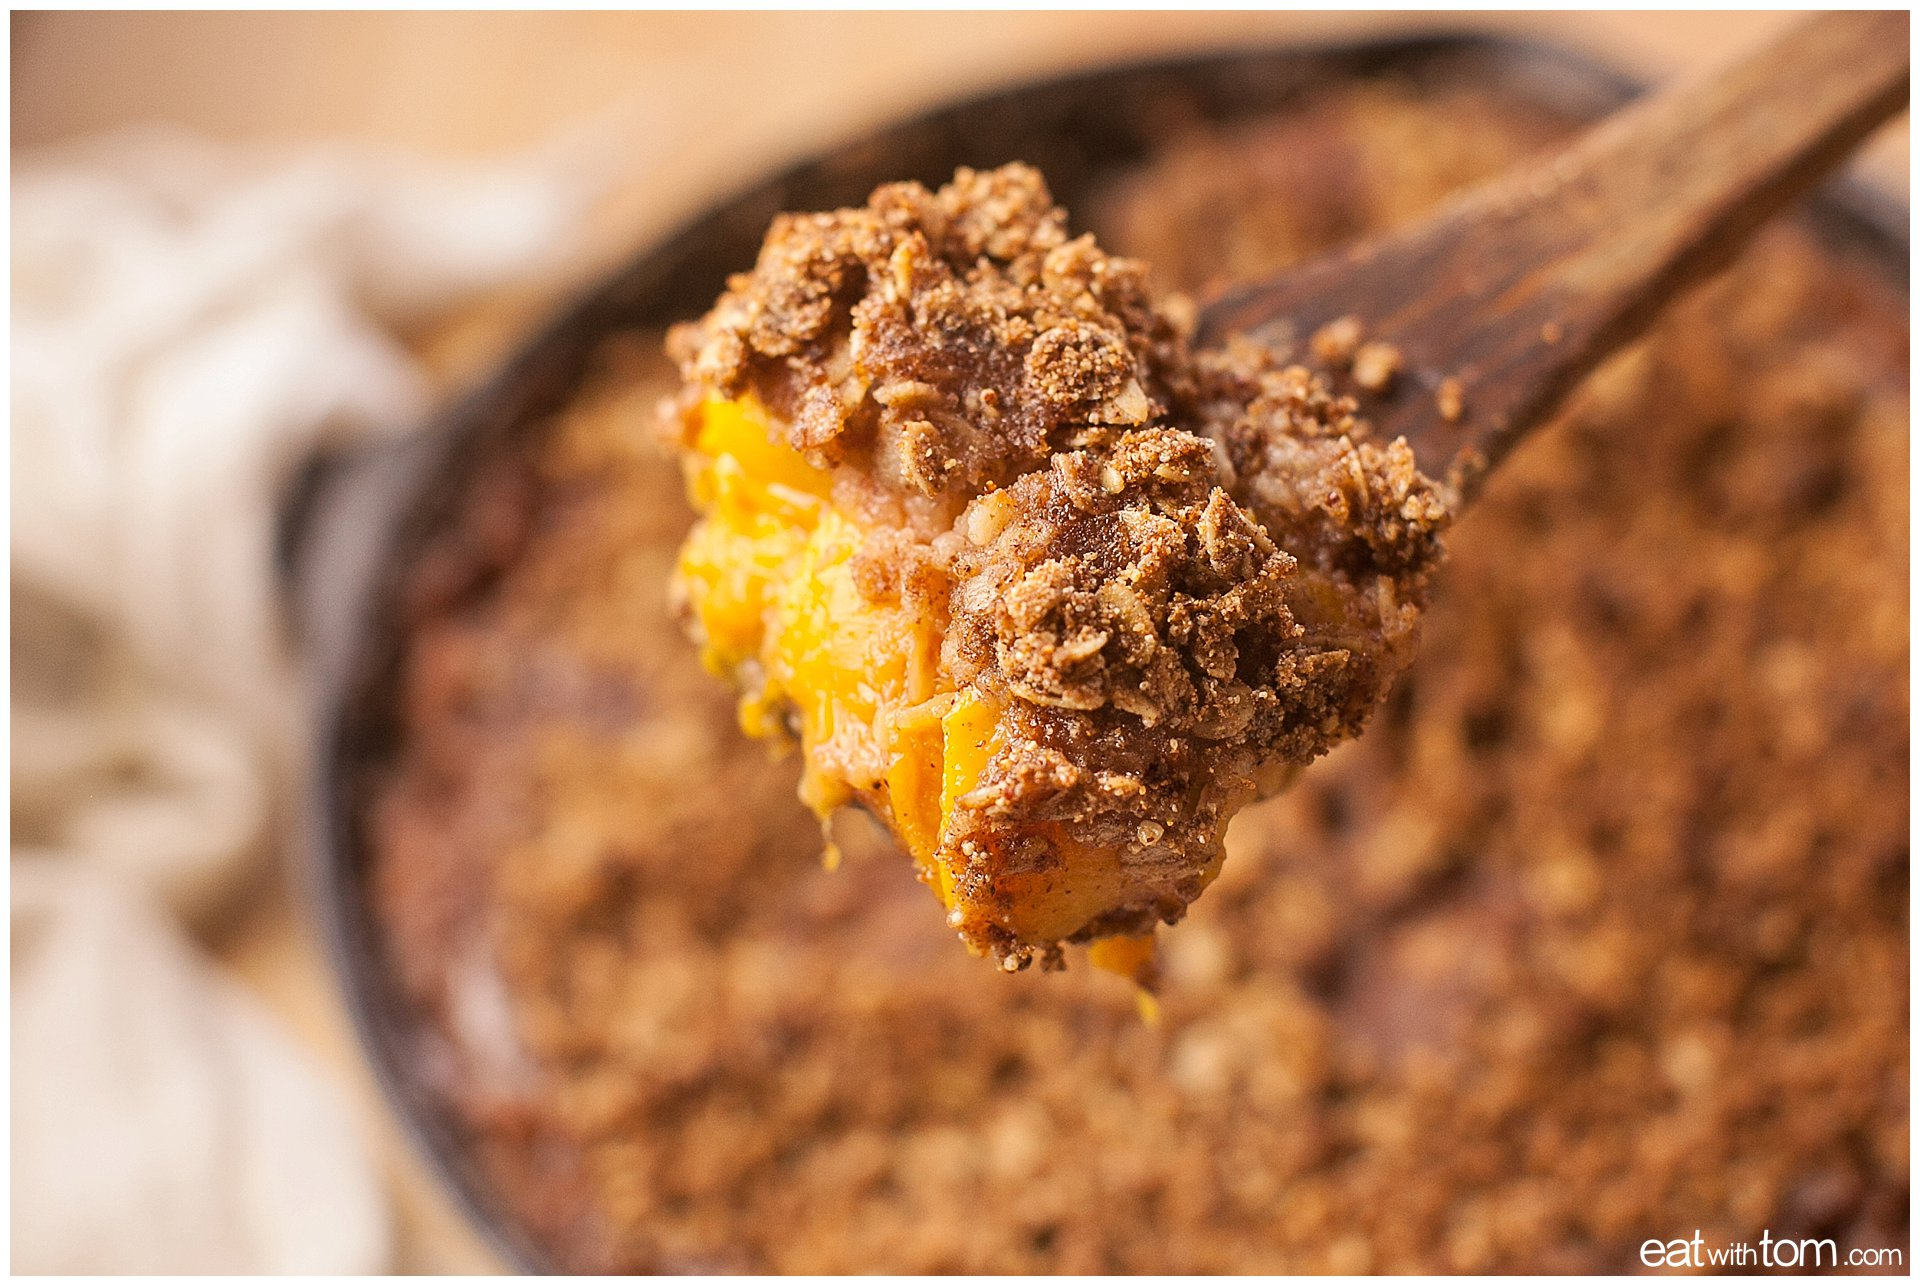 Peach quinoa crumble dessert recipe - Eat with Tom in Chicago - Food blog for the new food culture